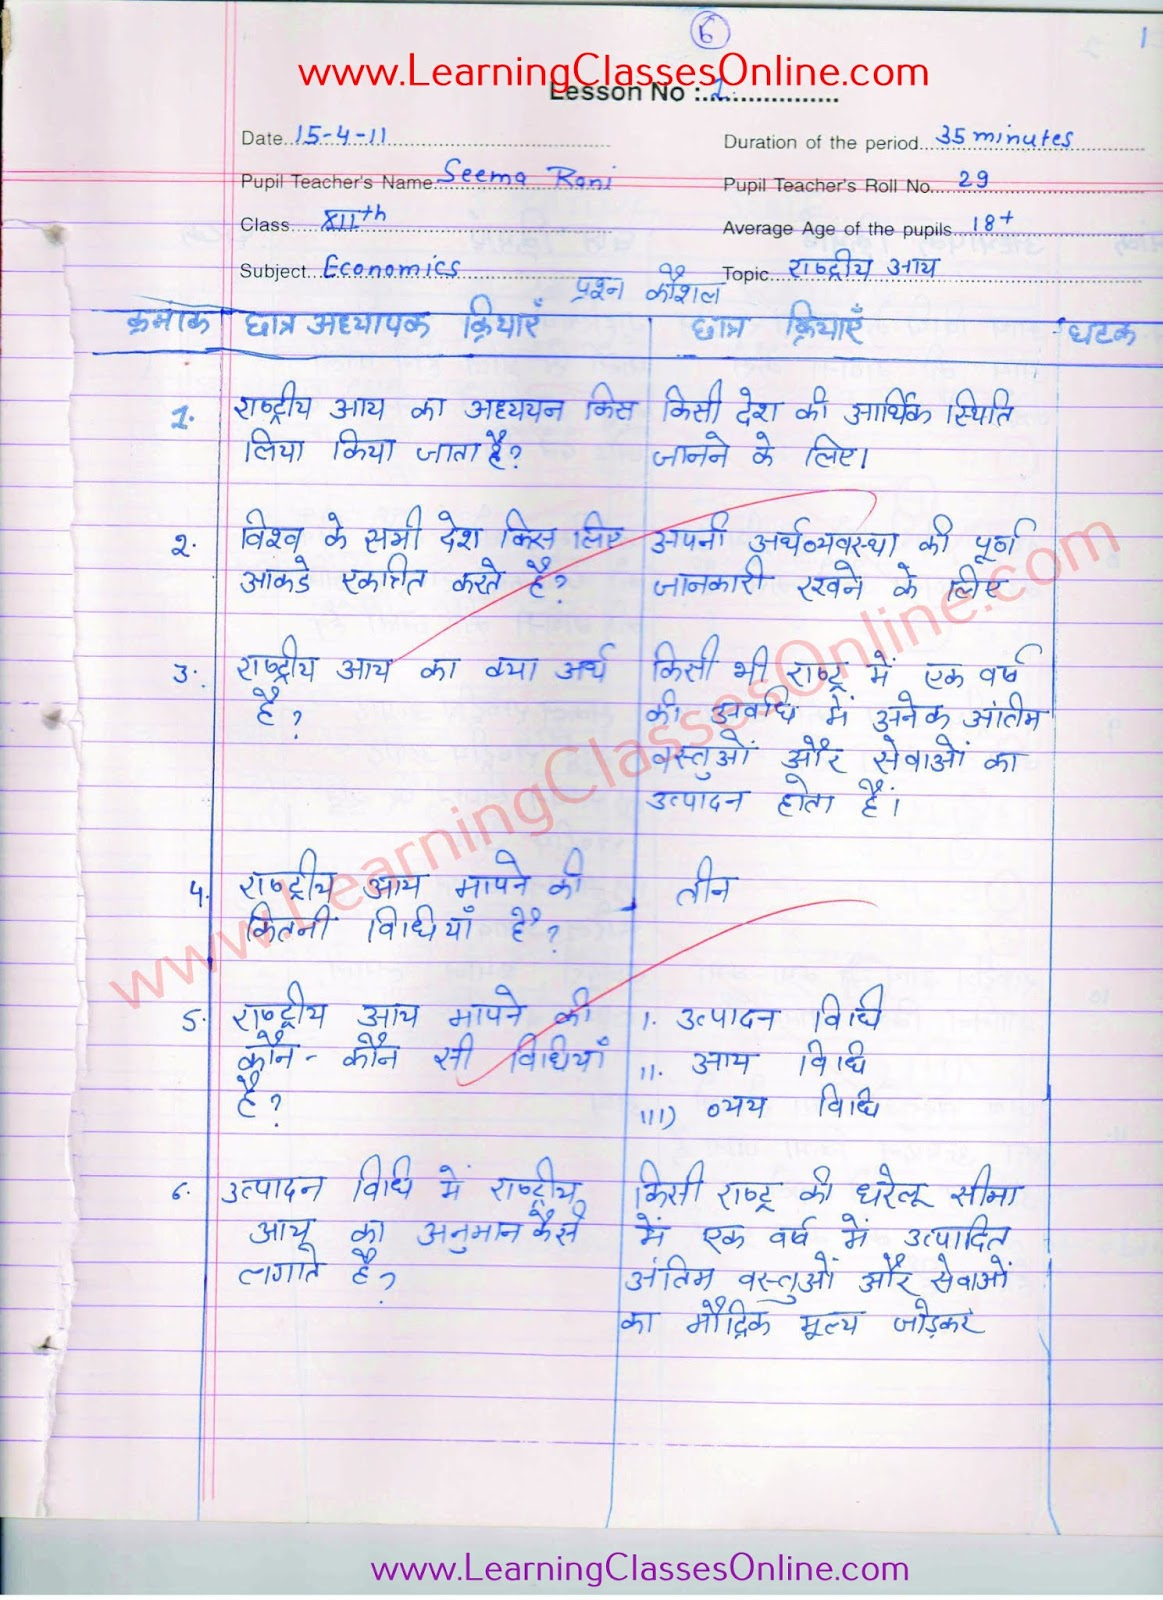 microteaching economics lesson plan, skill of questioning economics lesson plan in hindi